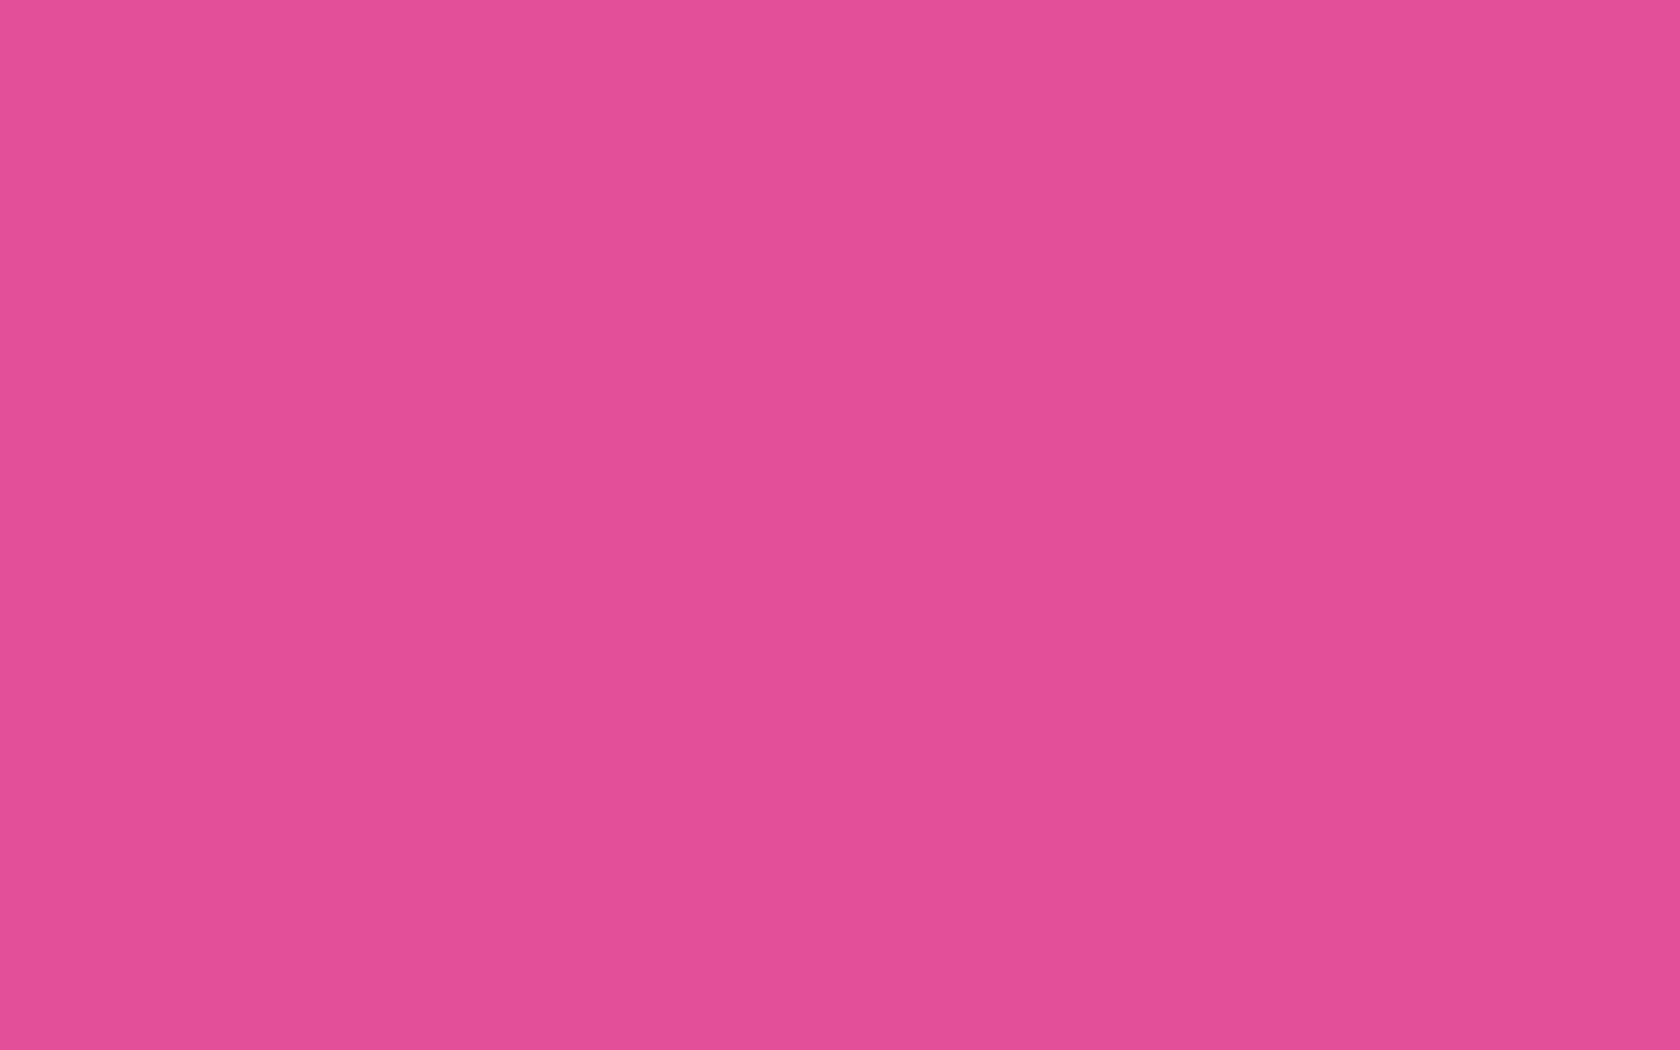 1680x1050 Raspberry Pink Solid Color Background